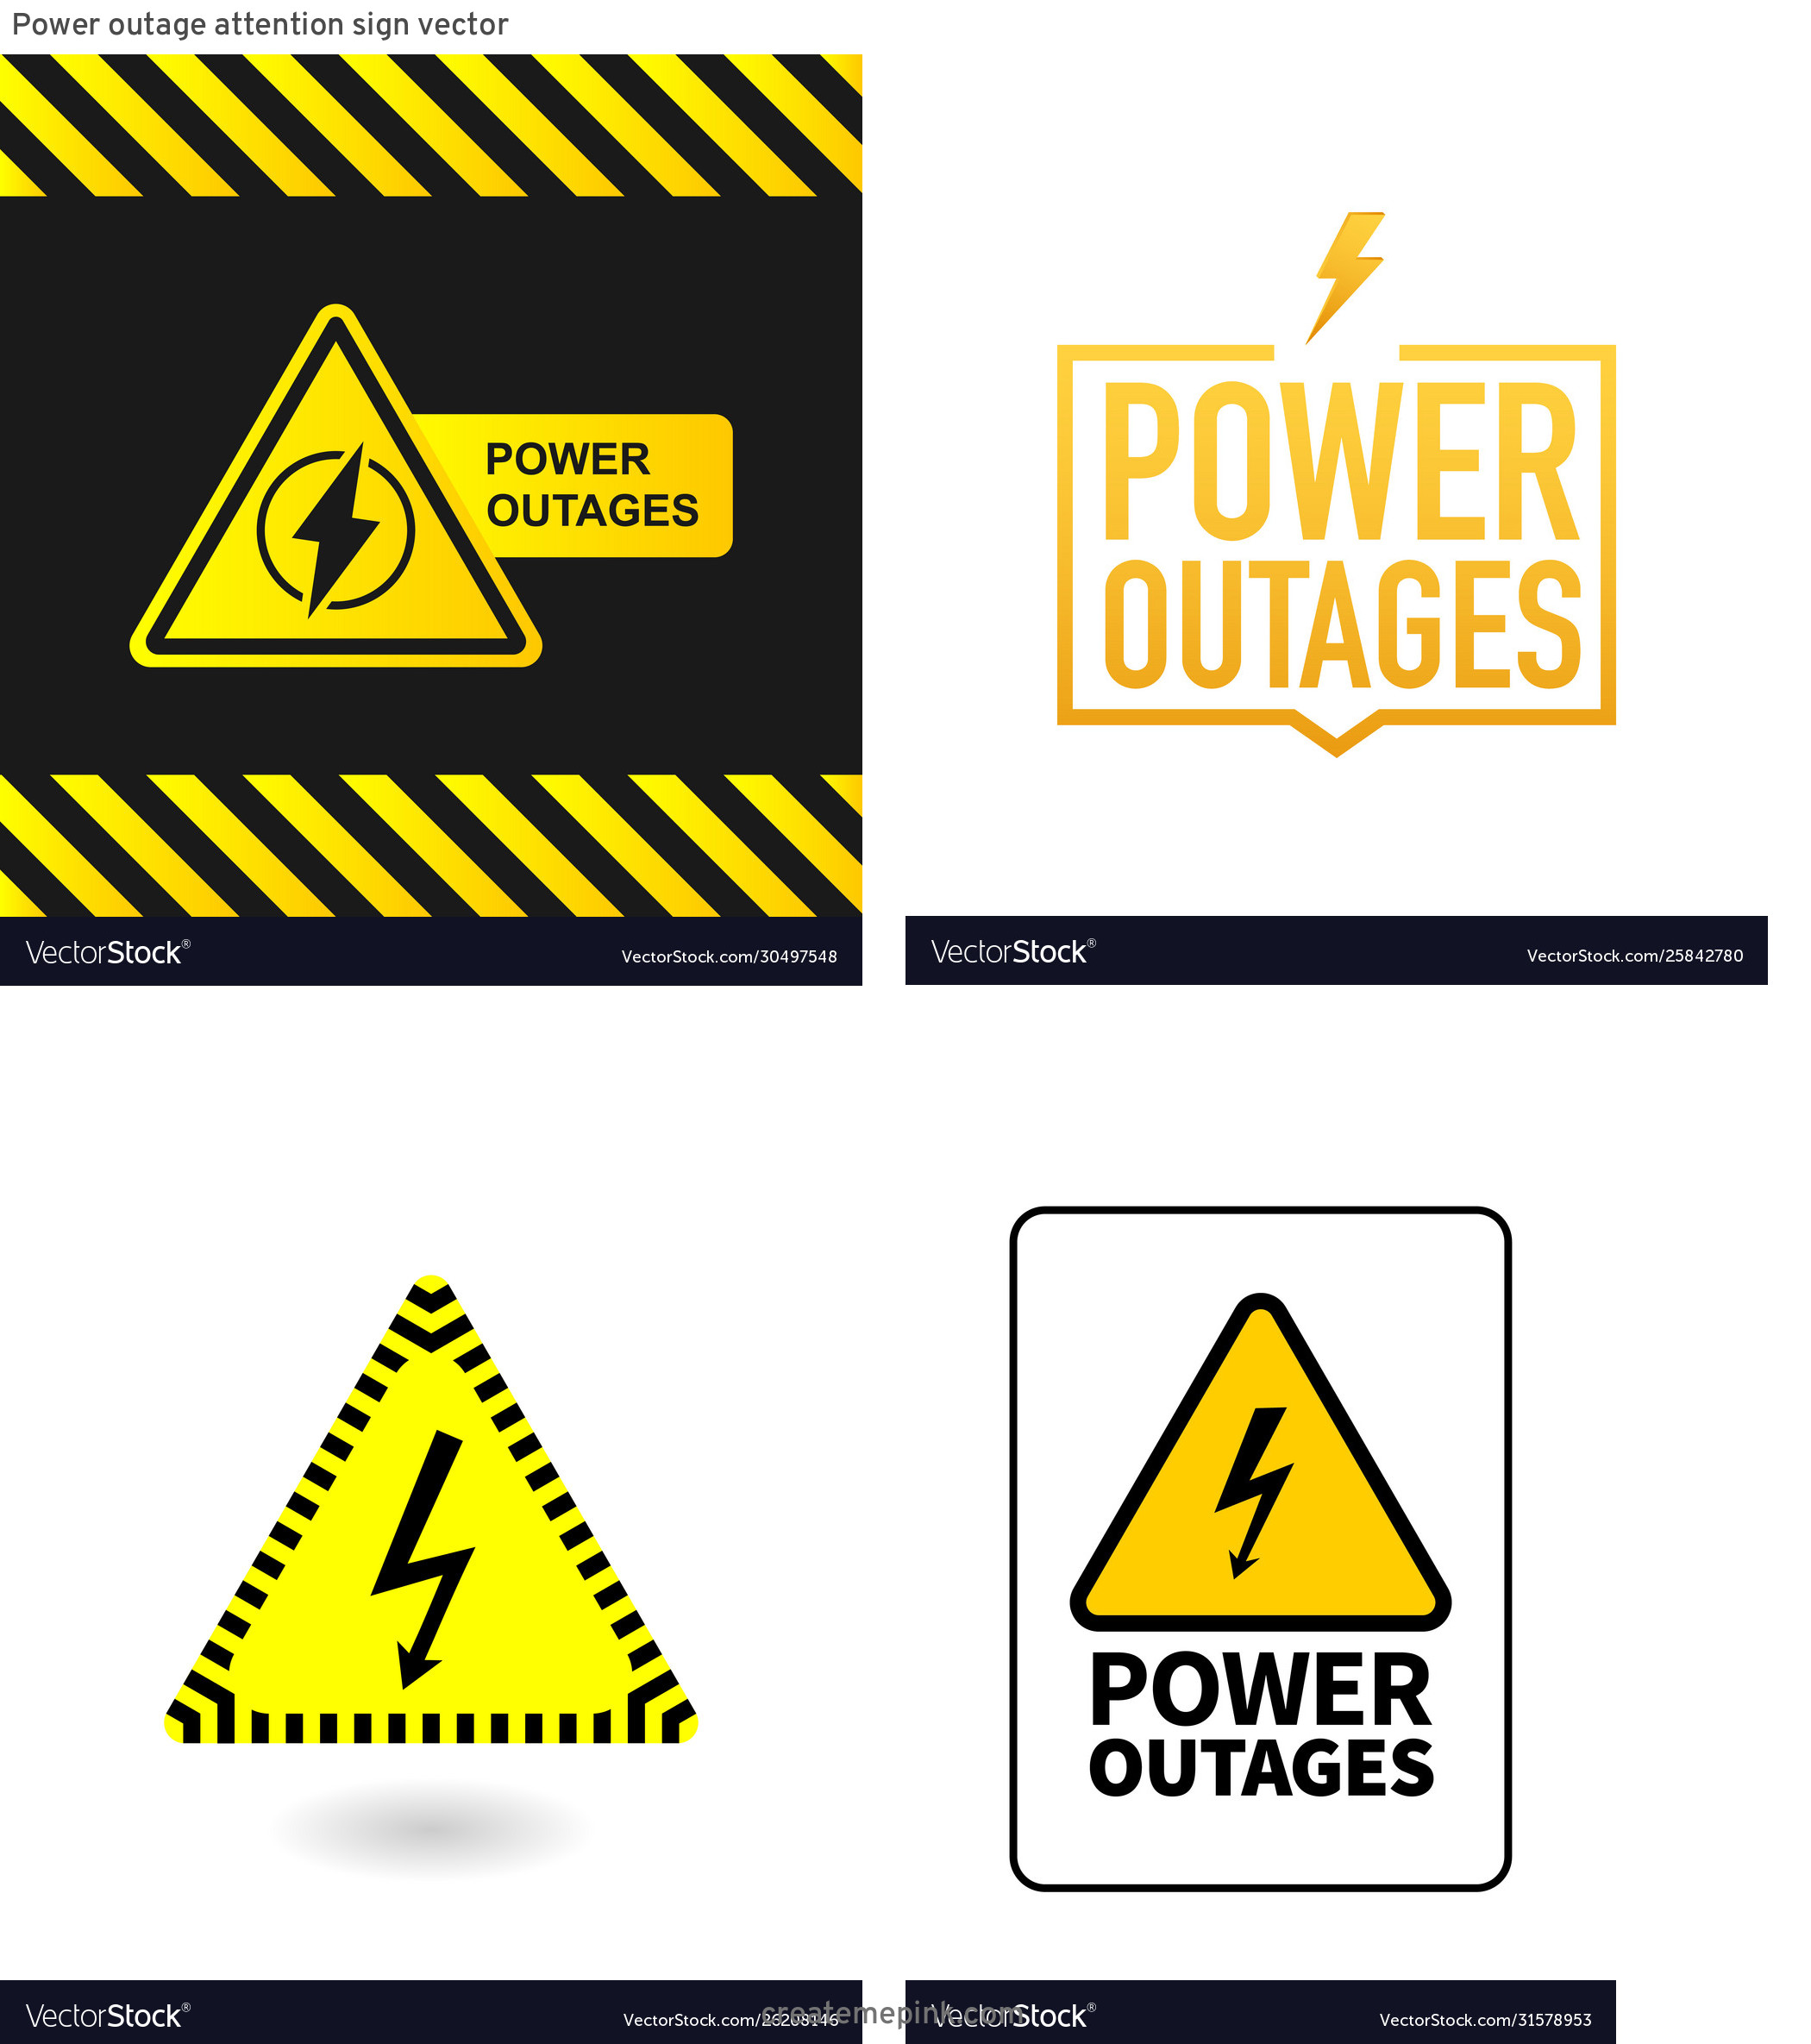 Vector Power Outage: Power Outage Attention Sign Vector